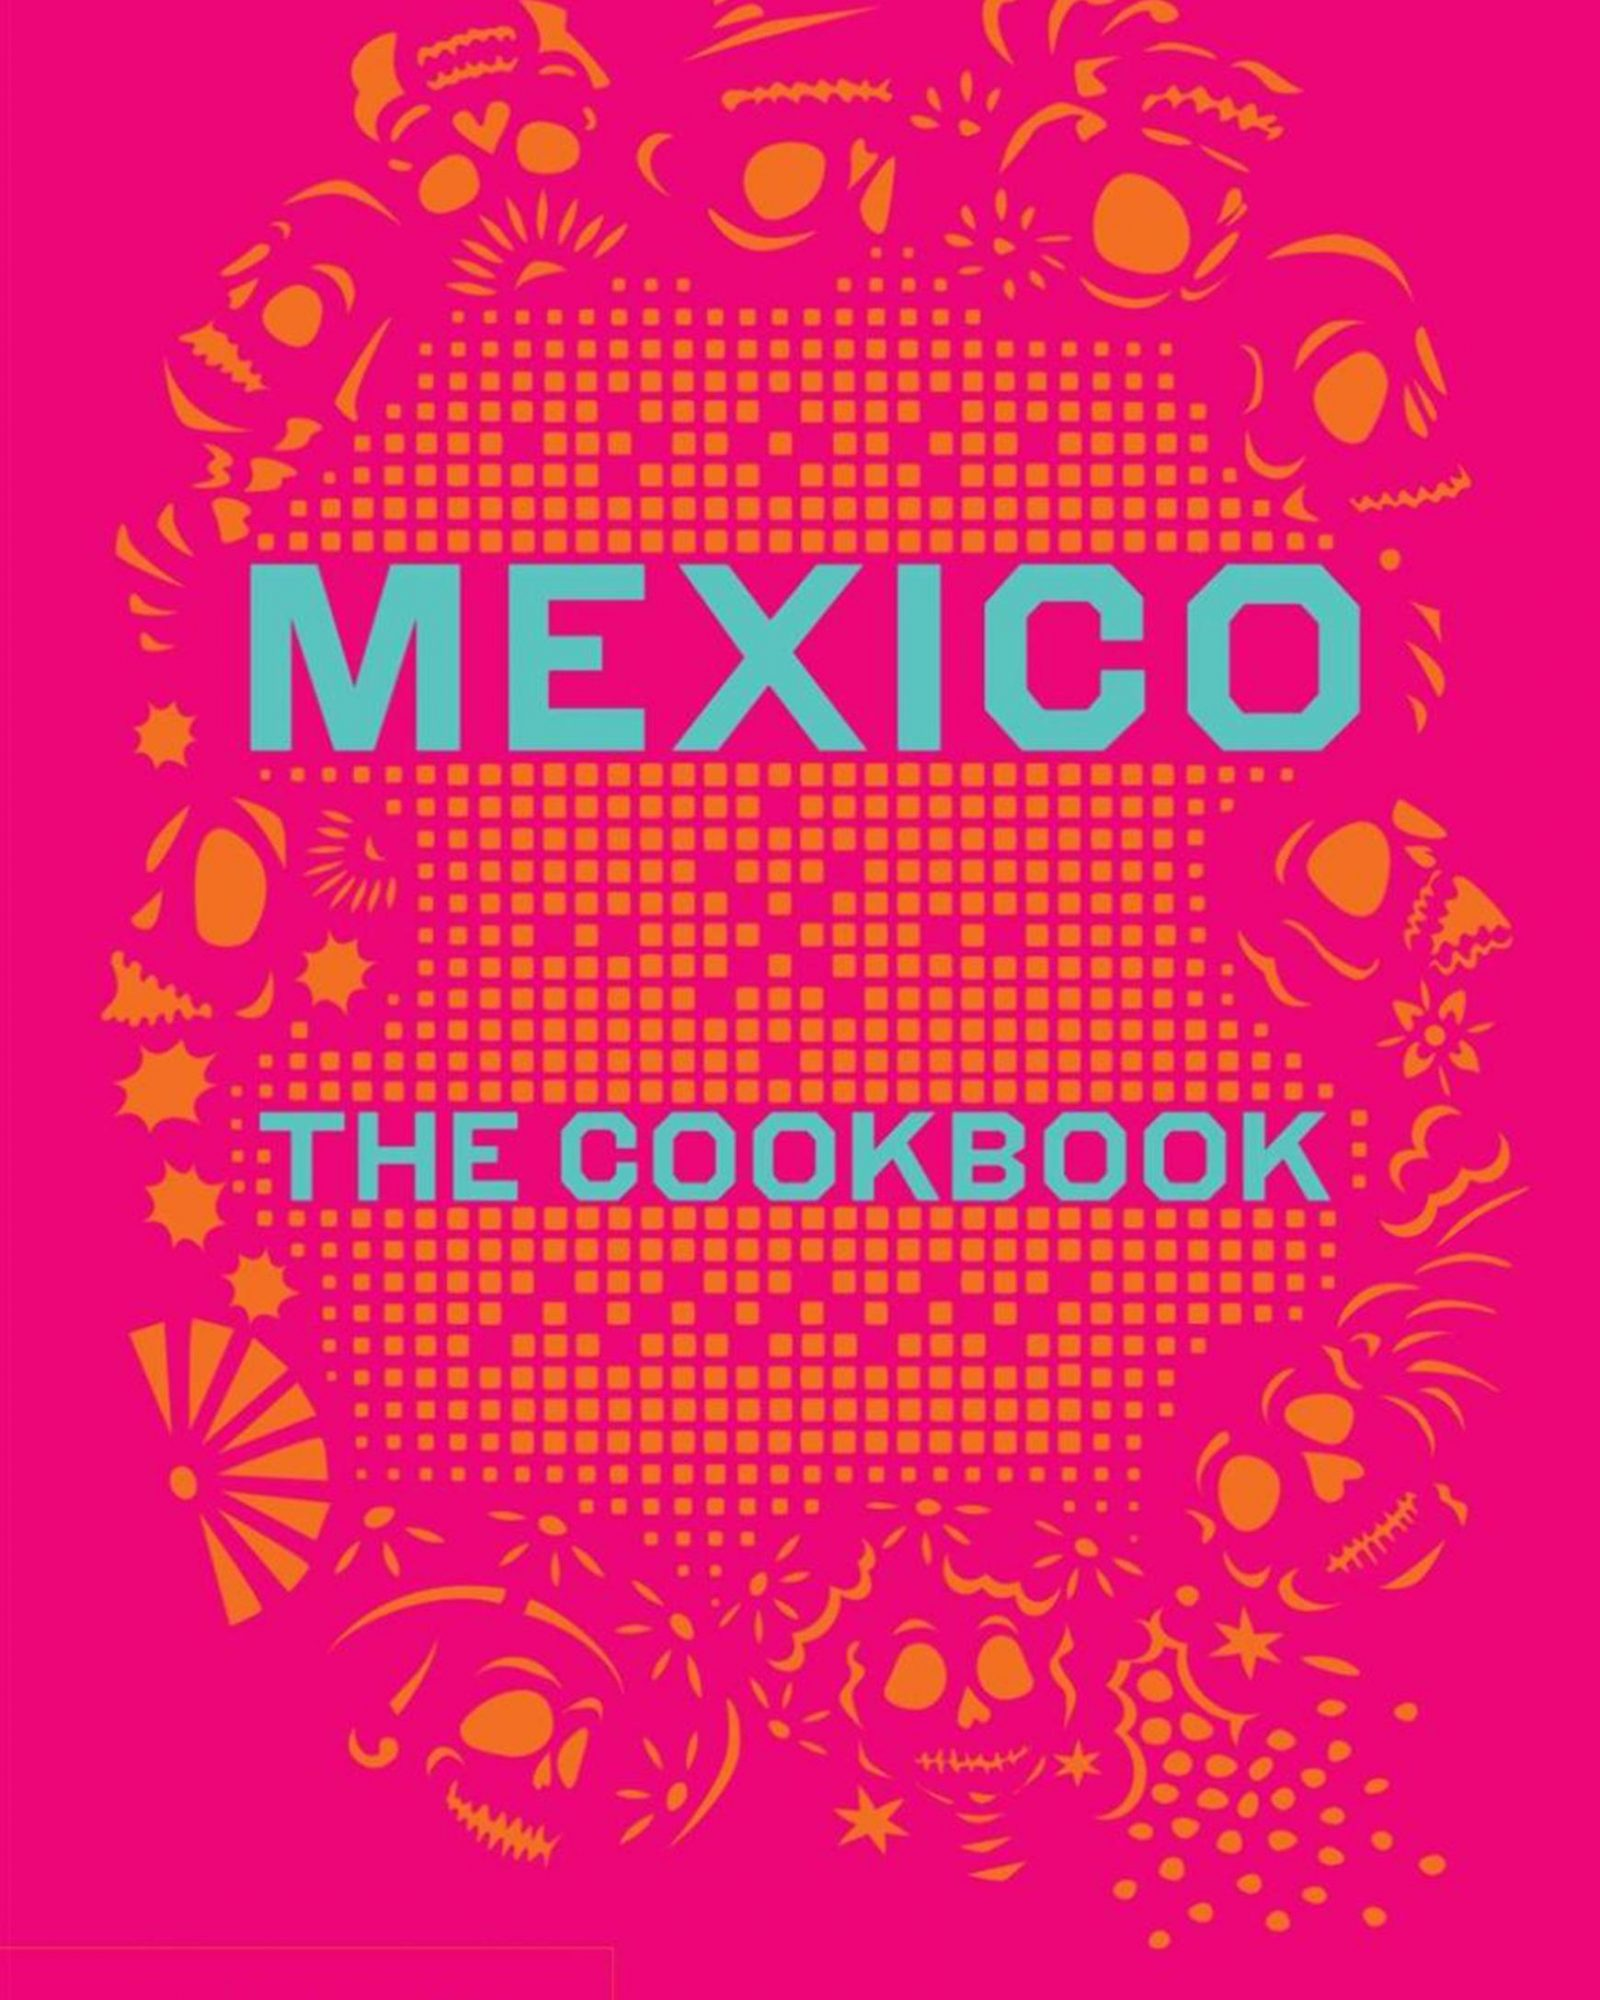 mexico-cookbook-0615